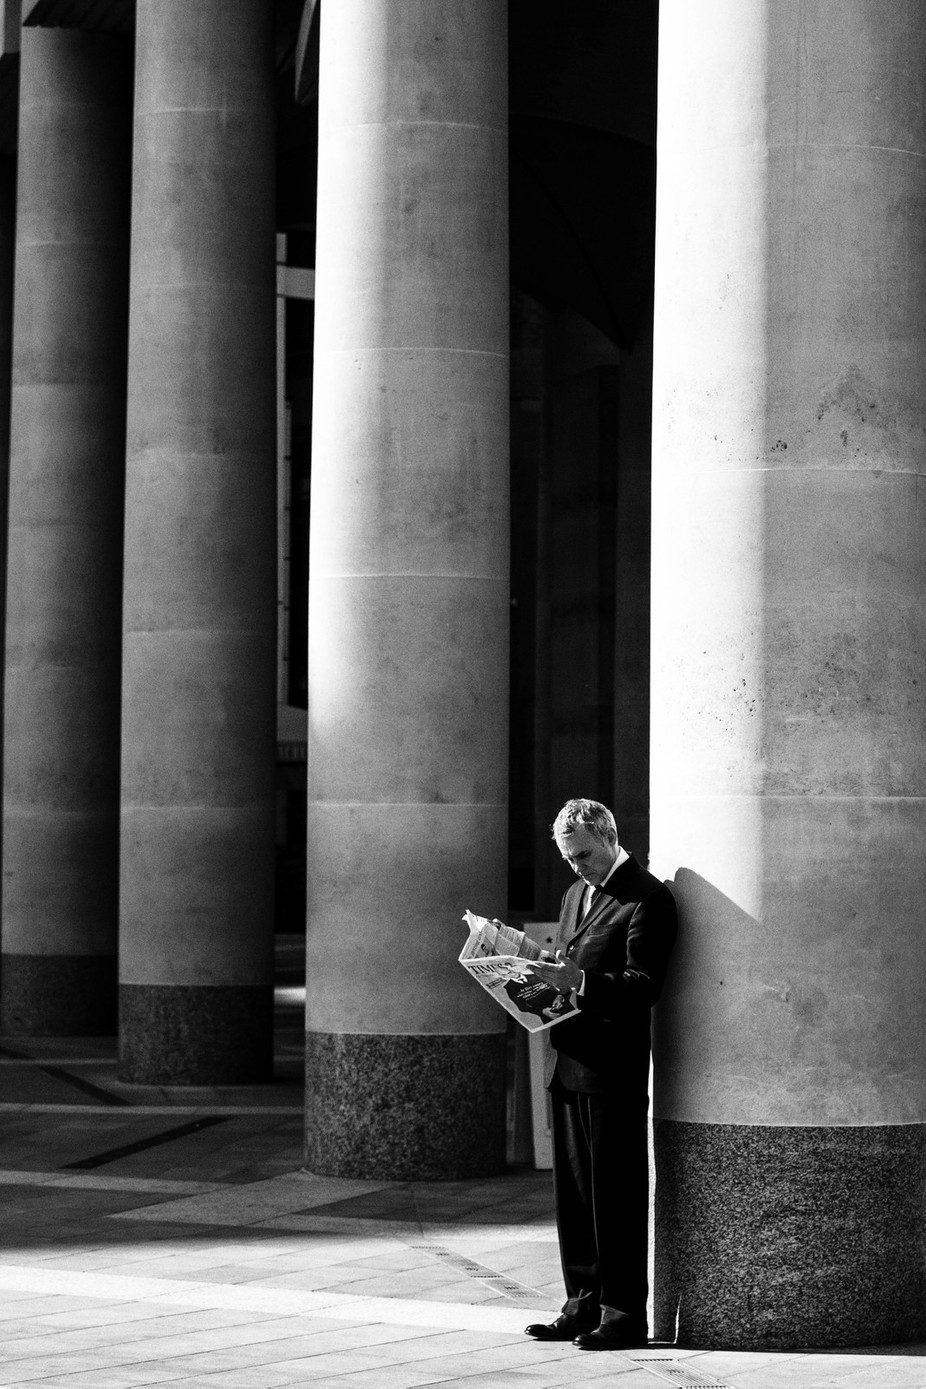 Reading Newspaper by danielwuttke - People In The City Photo Contest